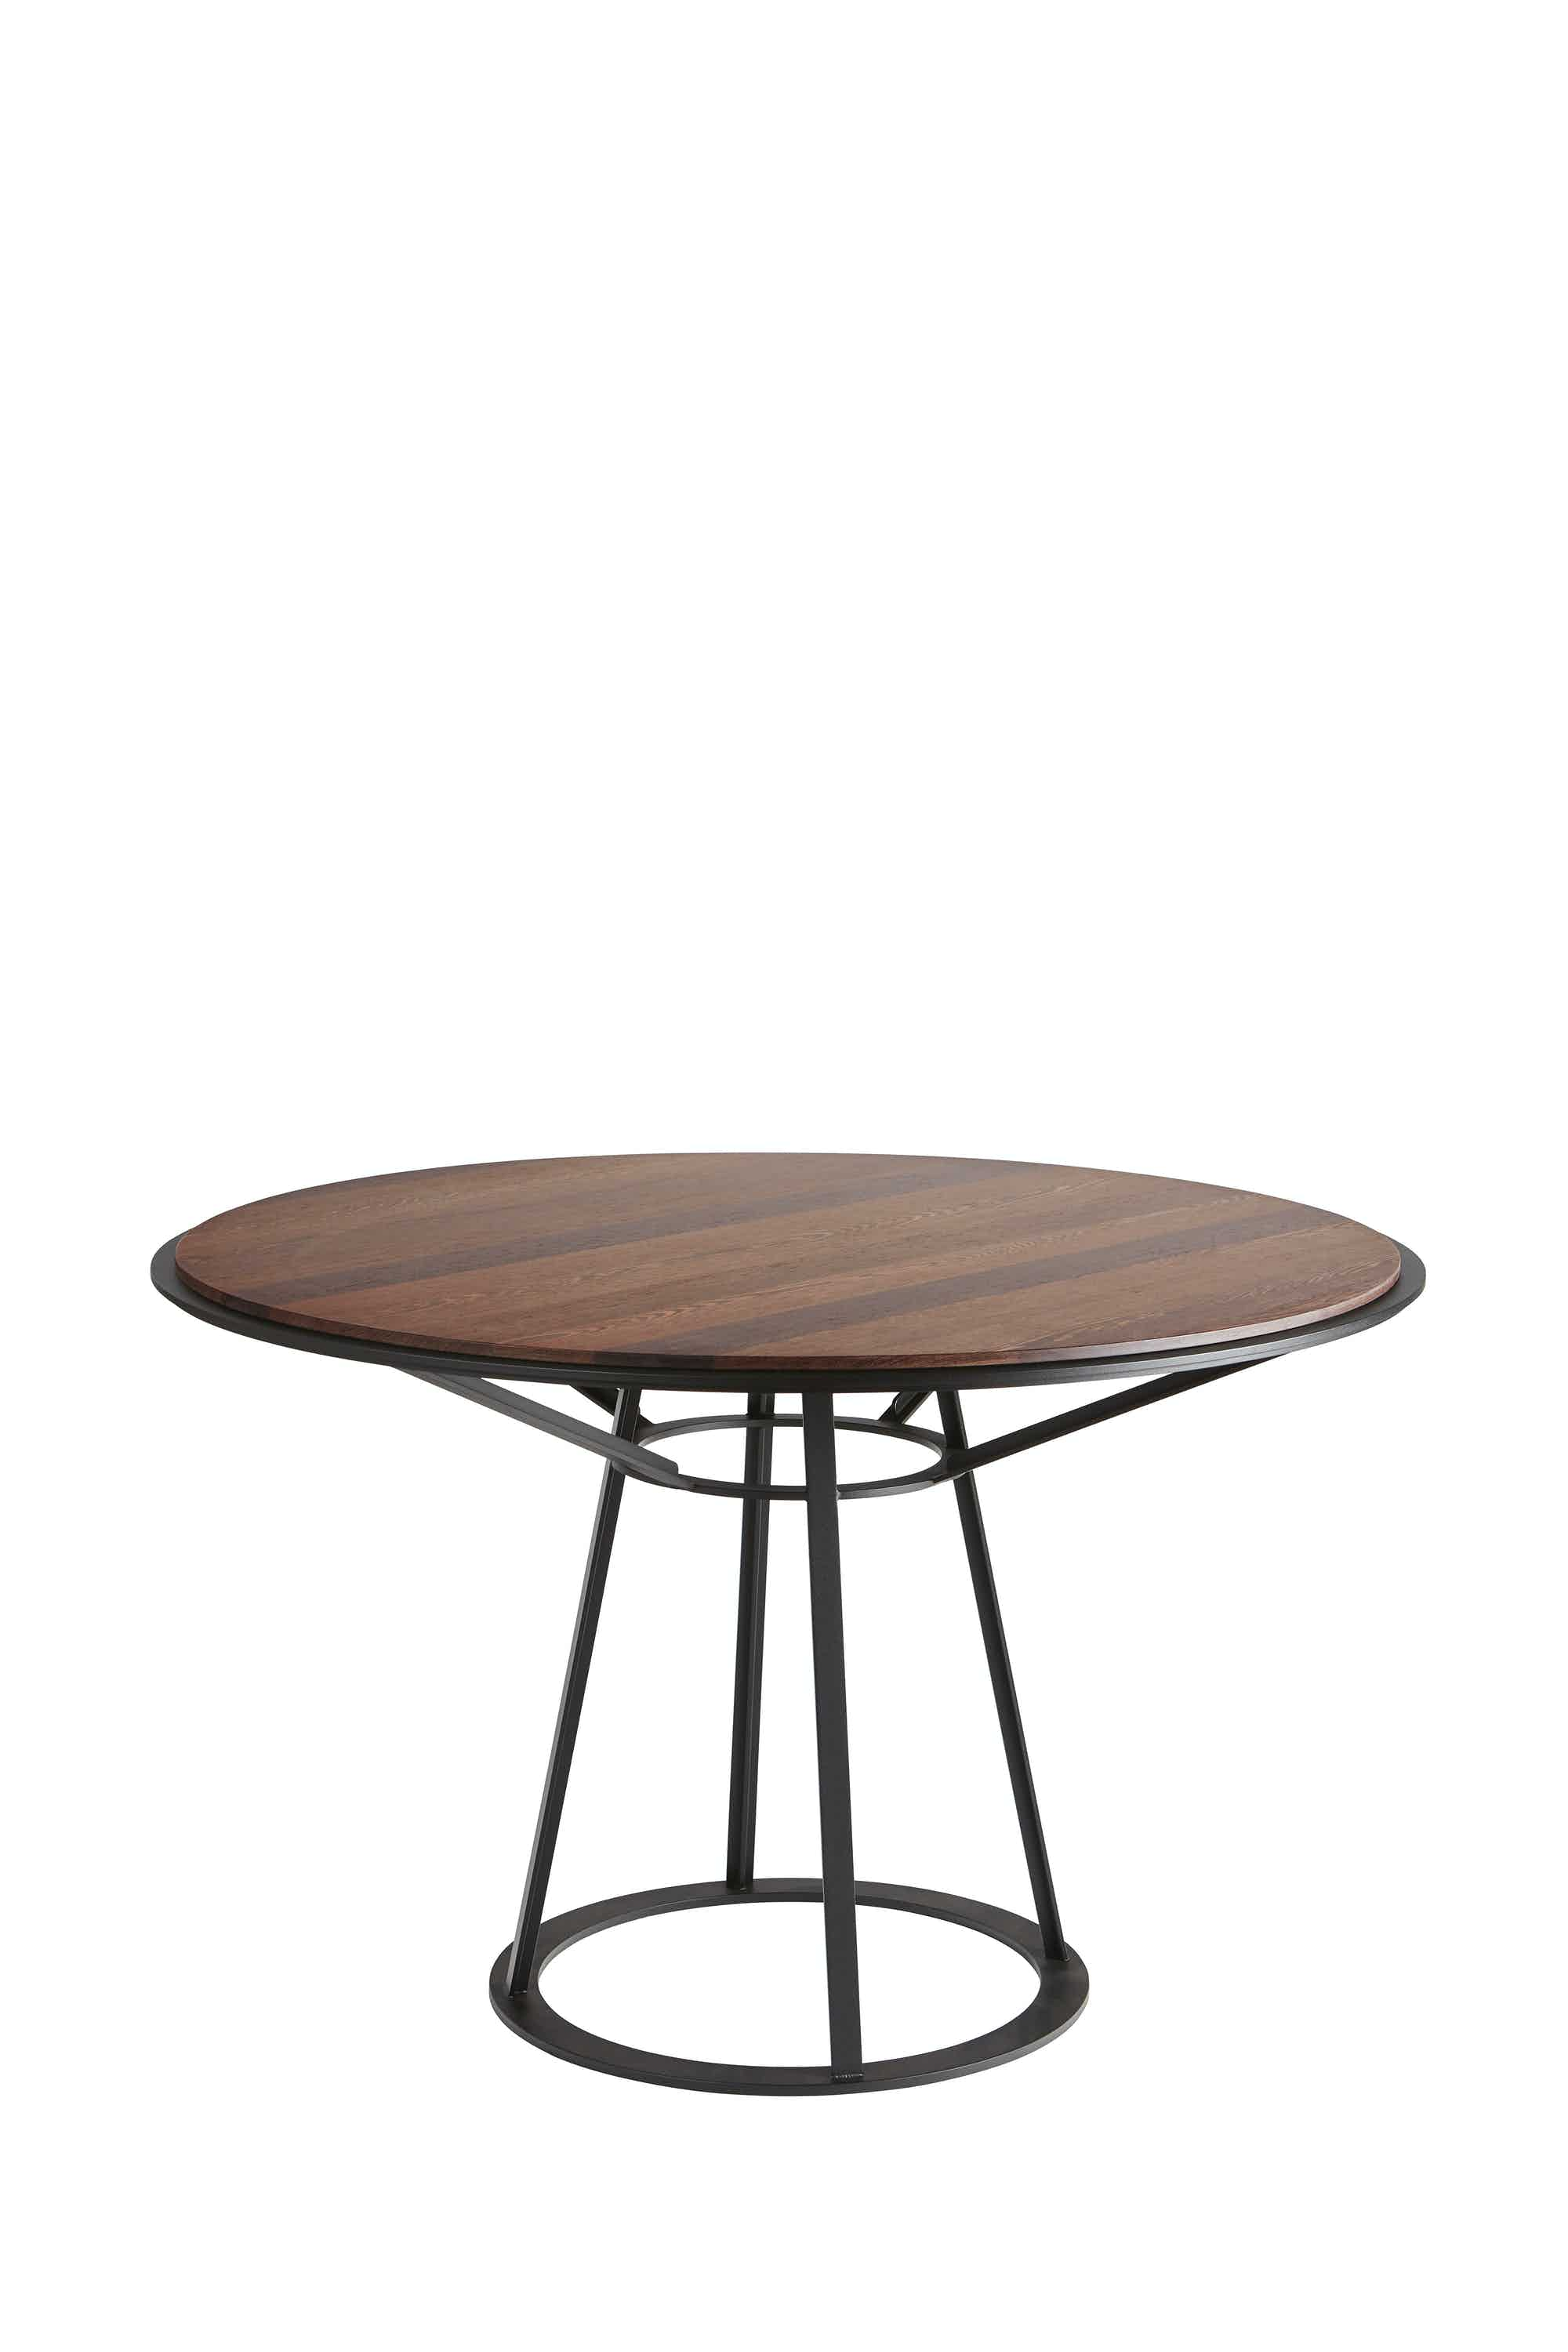 Spectrum Furniture Wenge Endless Round Table Haute Living